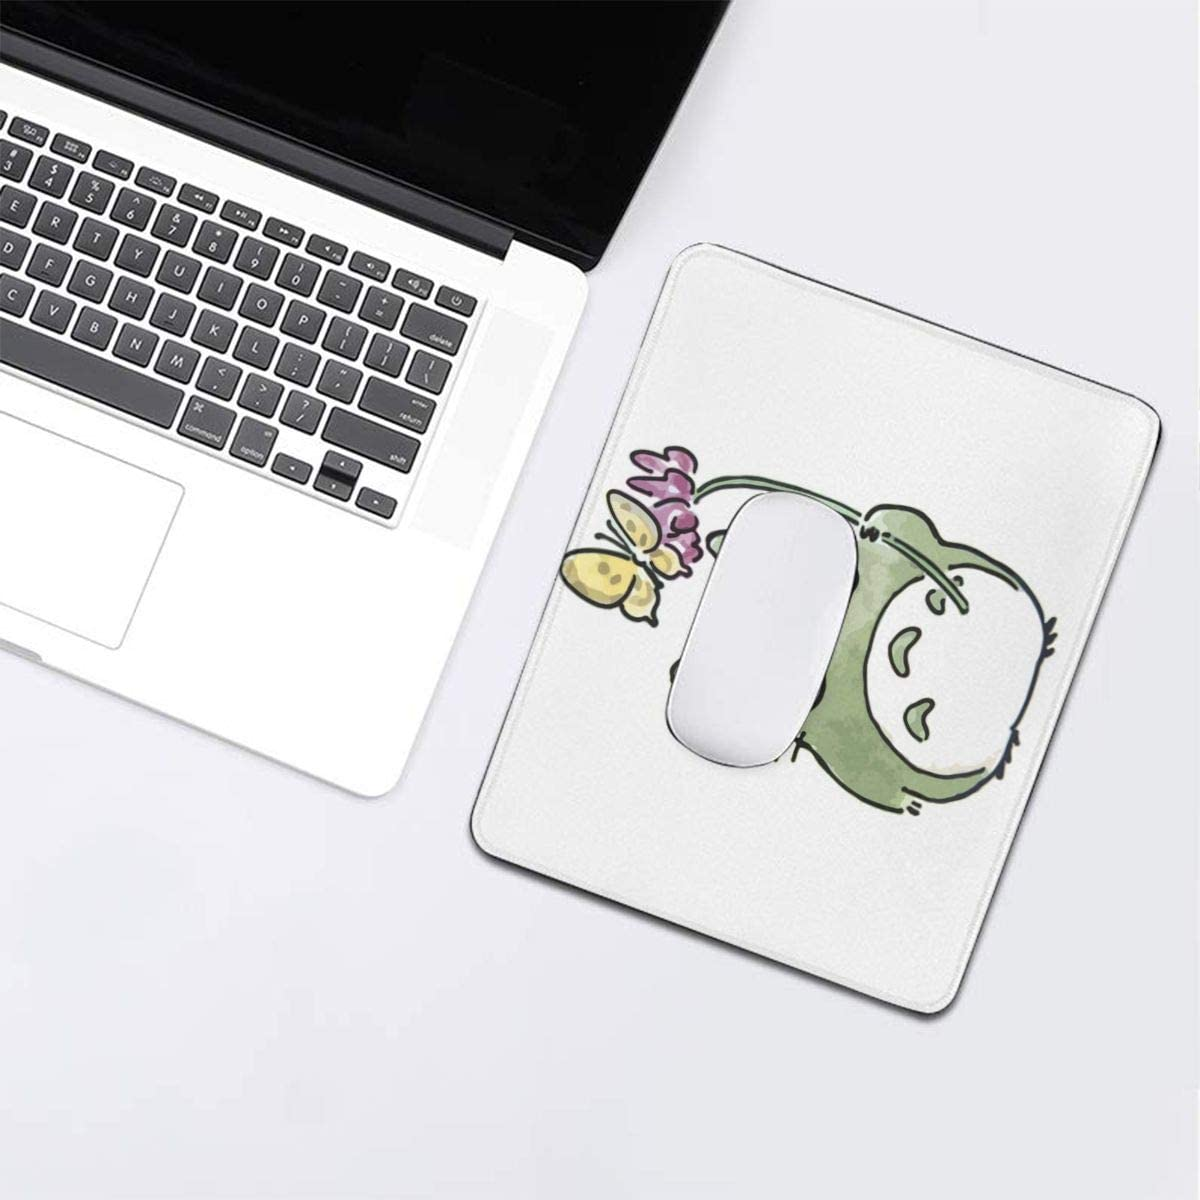 Kikis Delivery Service Jiji Mouse Pad Non-Slip Gaming Mouse Pad with Stitched Edge Computer PC Mousepad Neoprene Base for Office Home